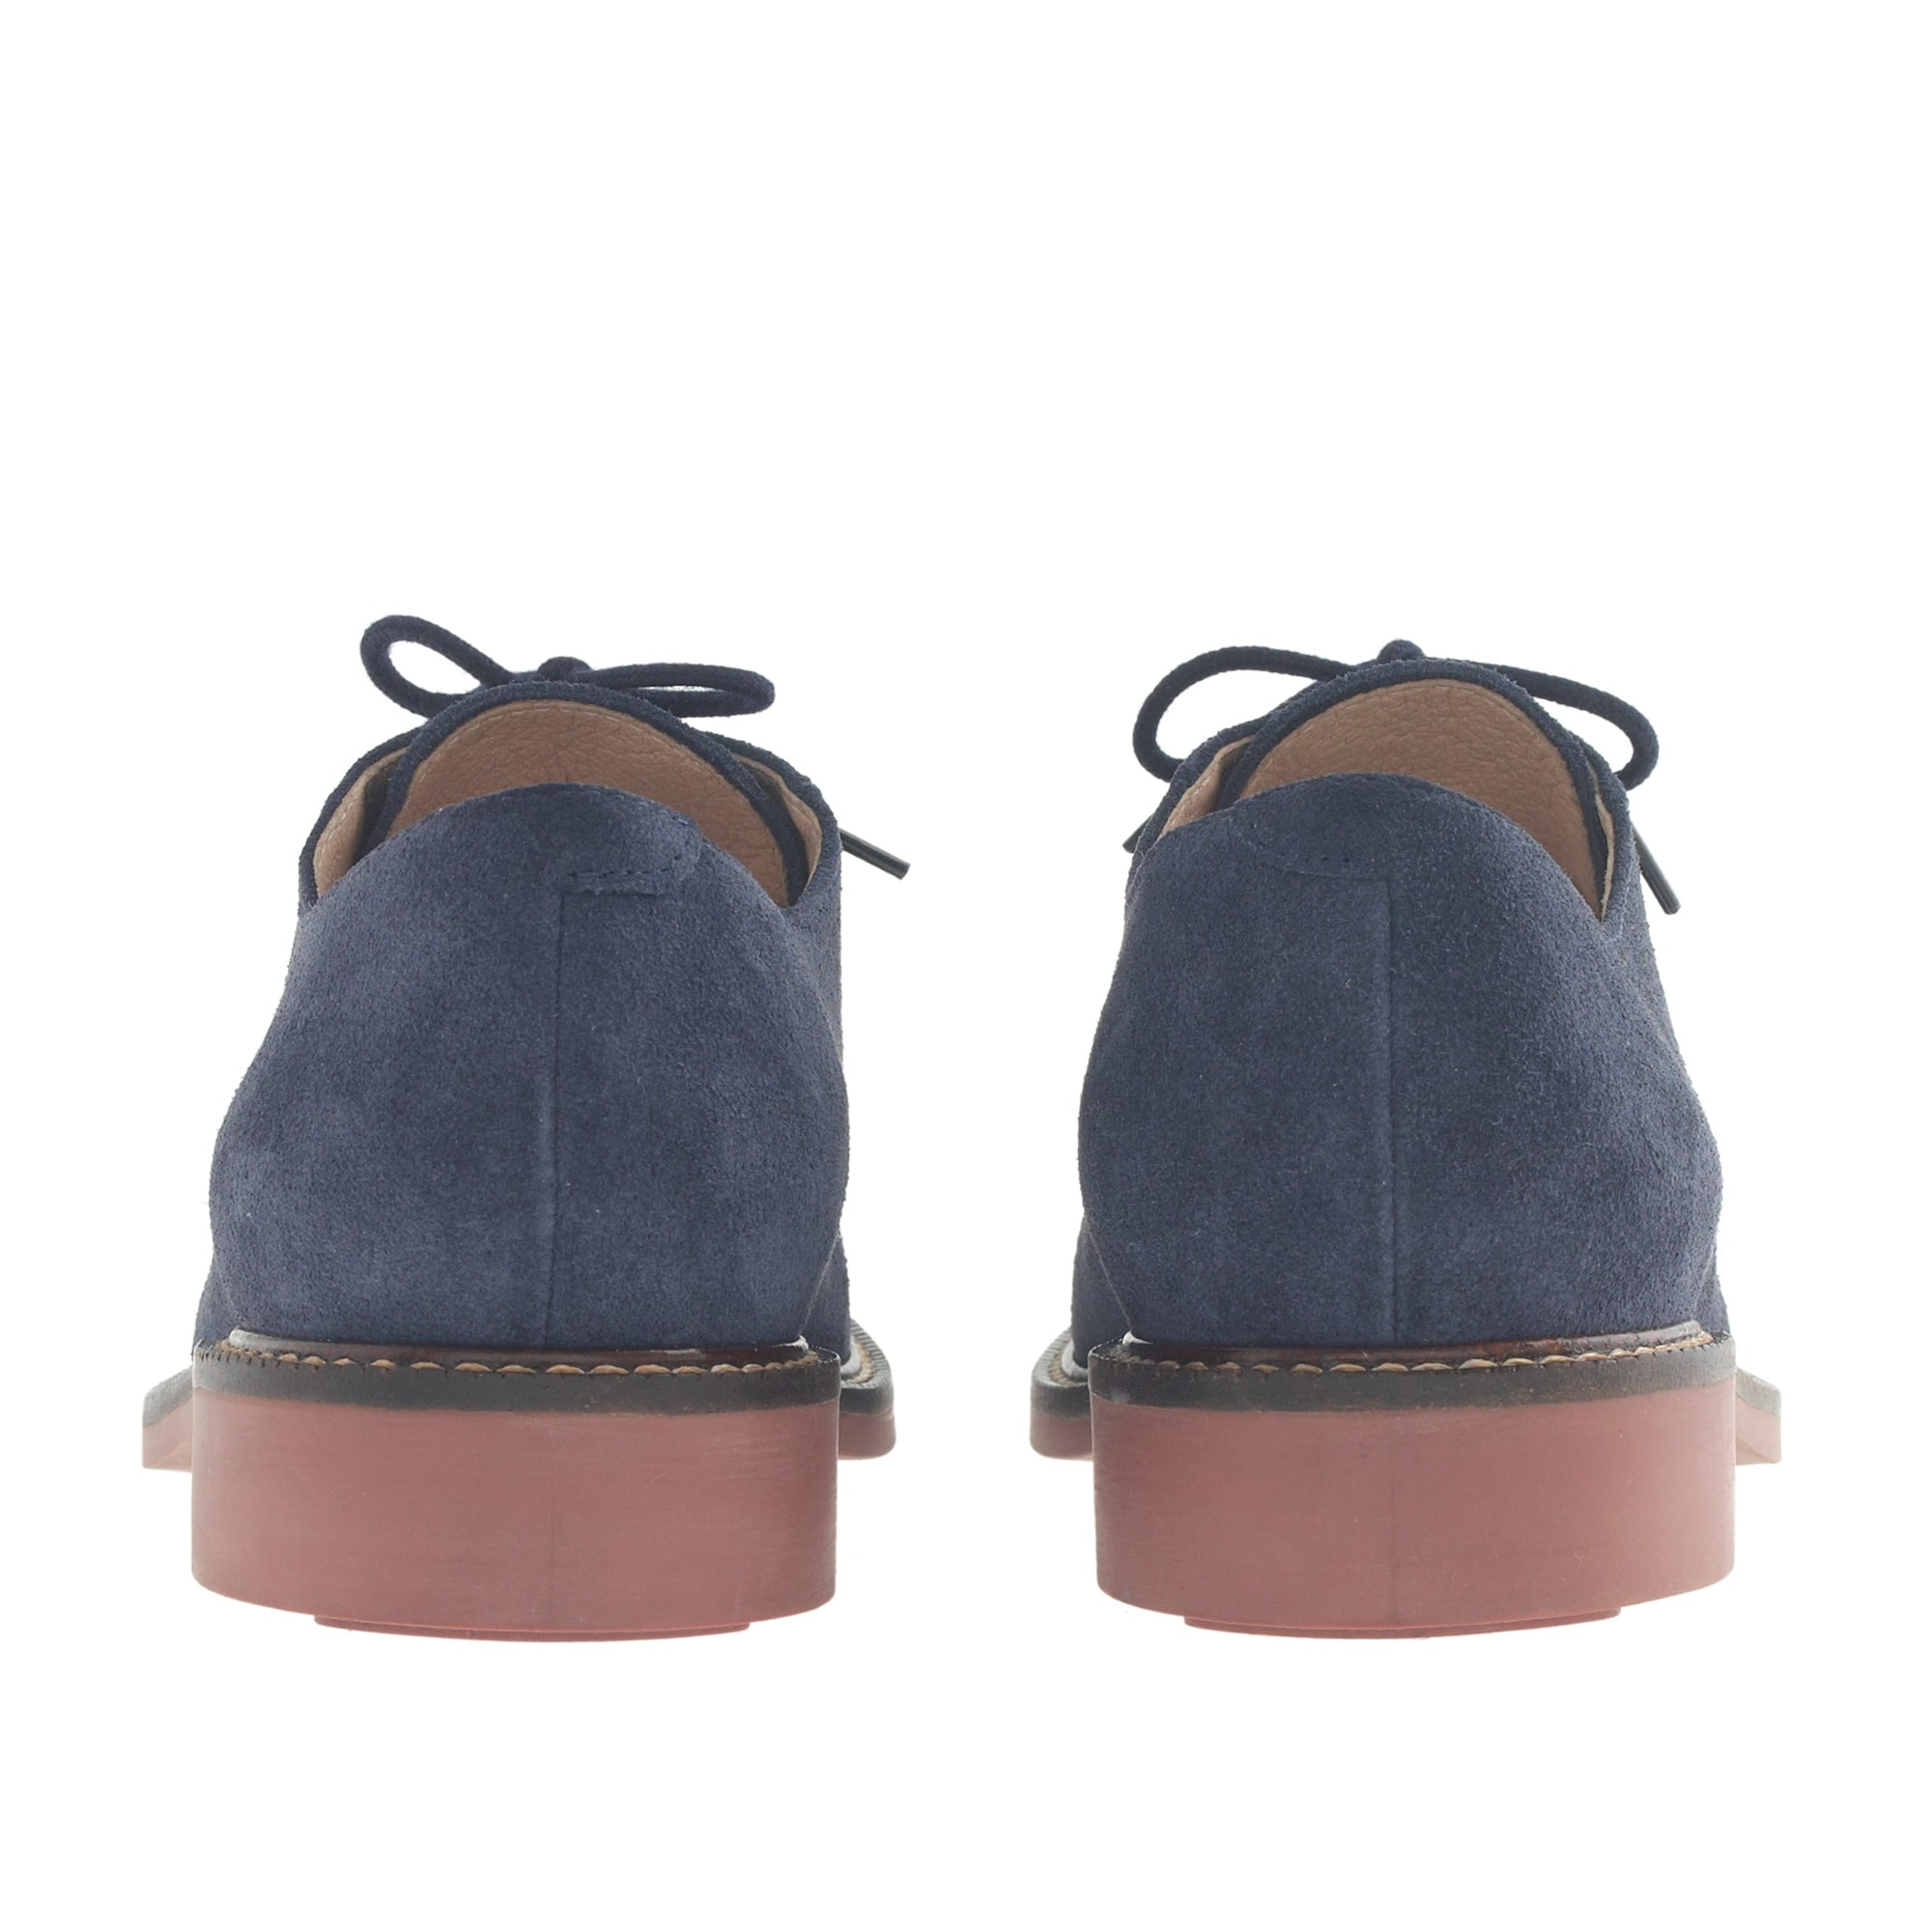 Image 3 for Kids' suede buck with contrast sole